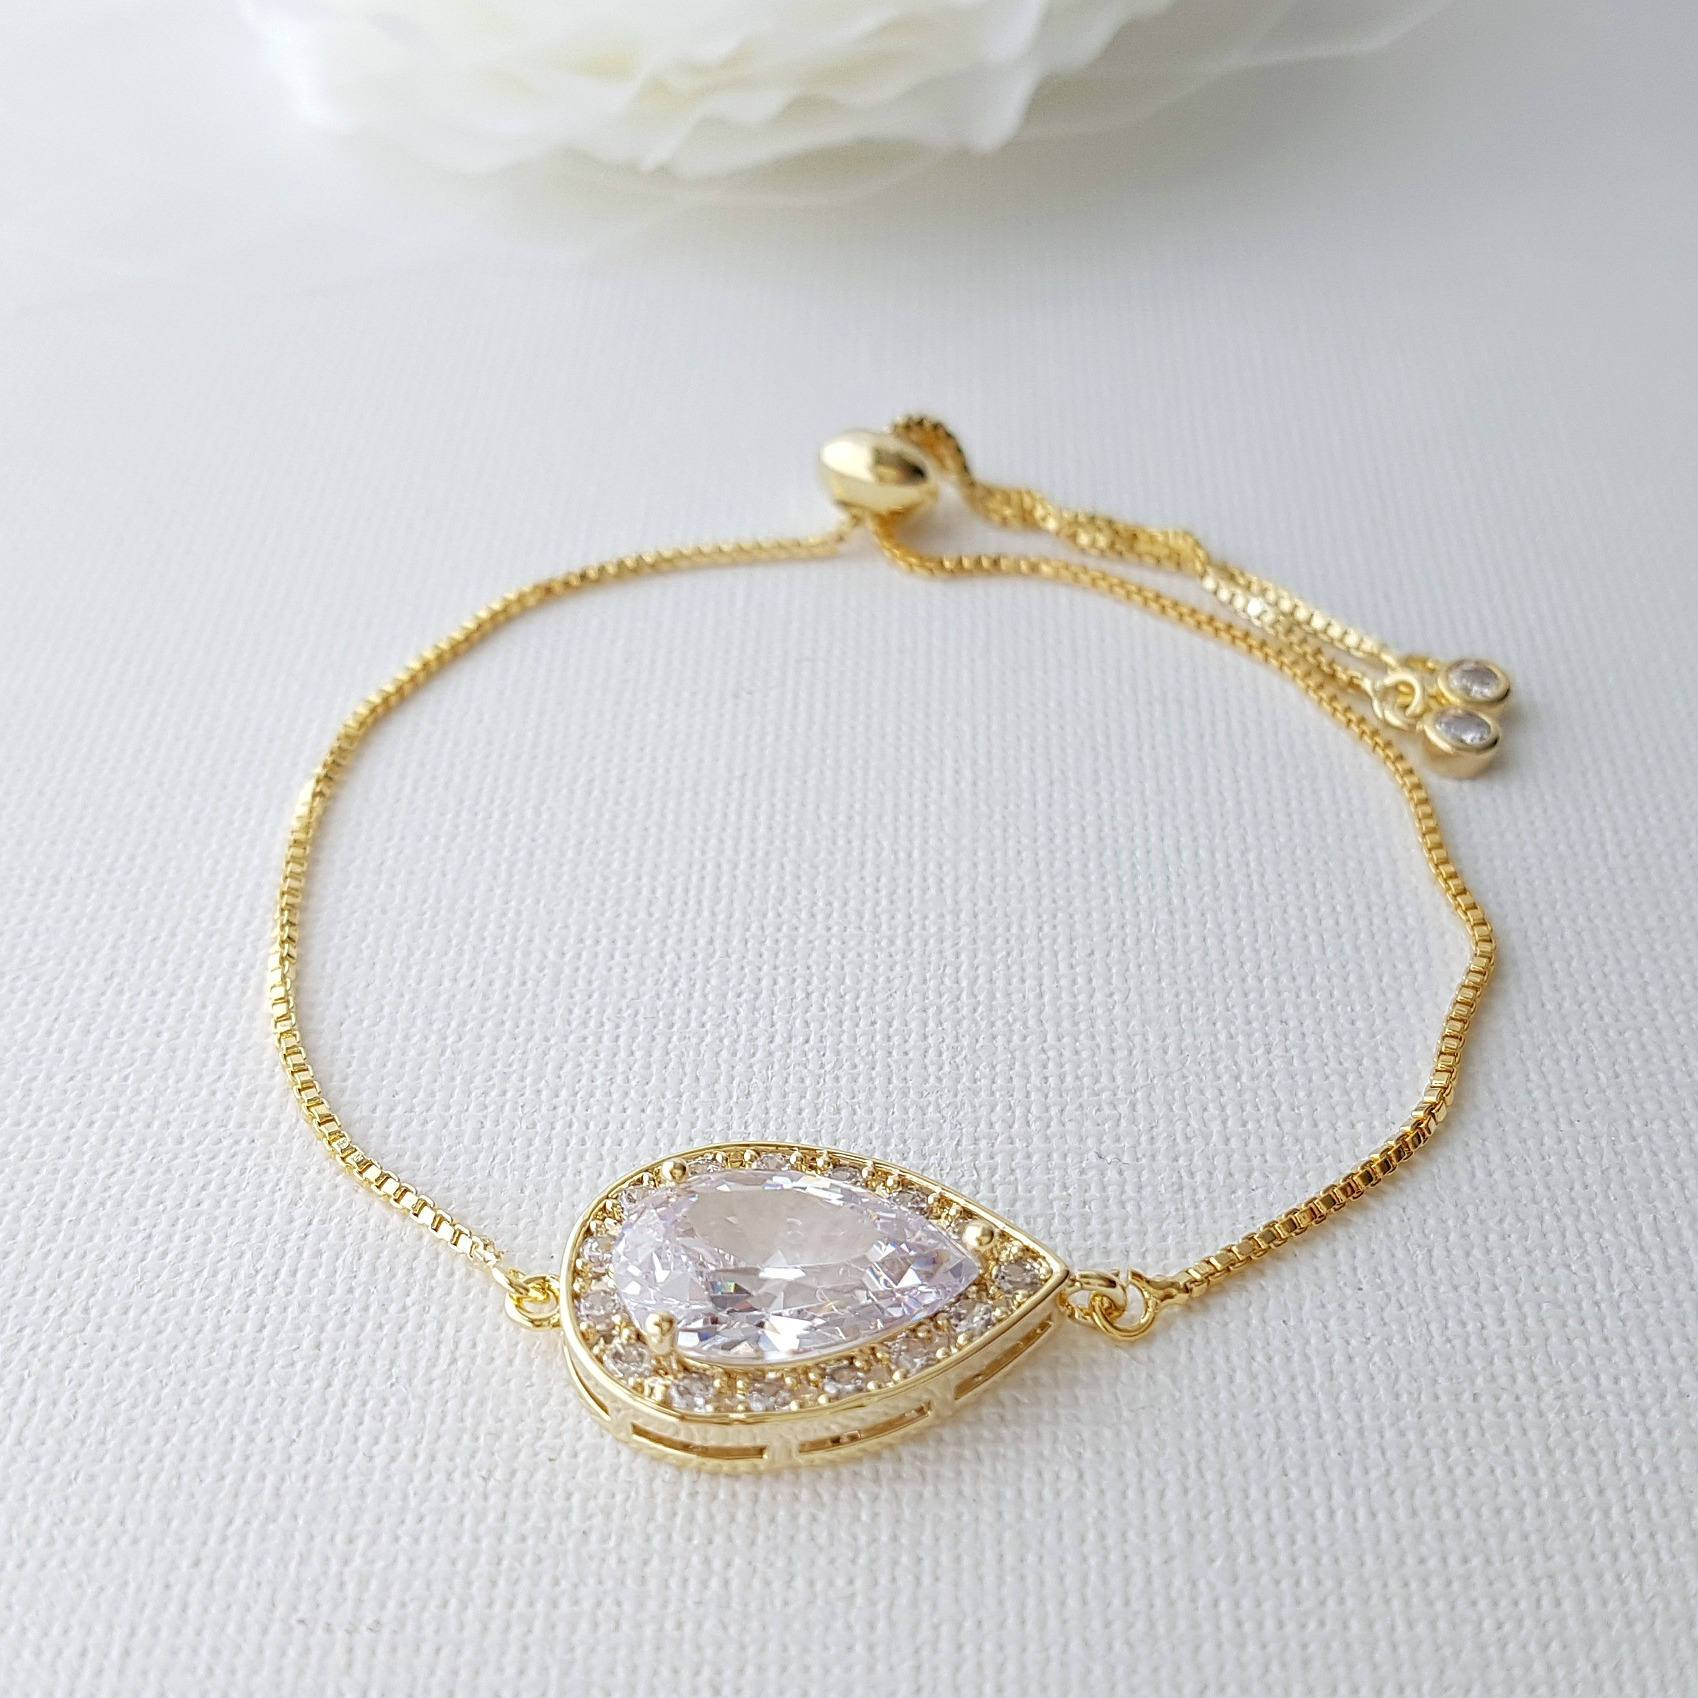 Simple Gold Wedding Bracelet for Both Brides & Bridesmaids- Evelyn - PoetryDesigns